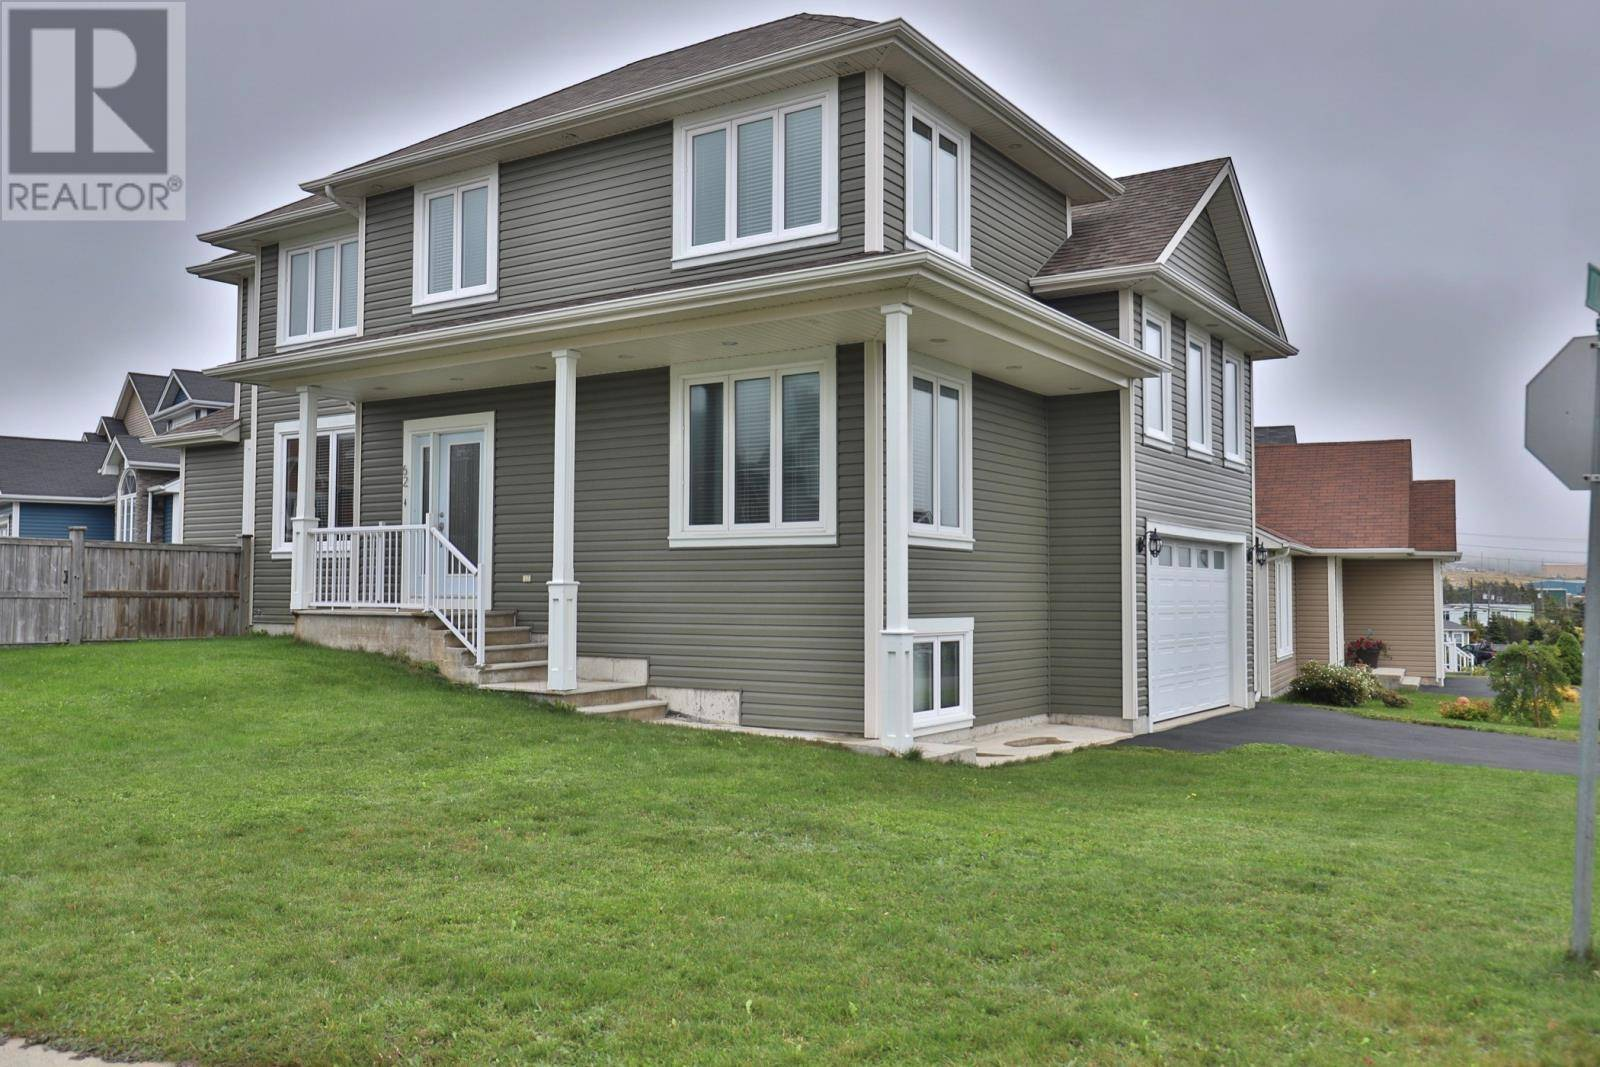 House for sale at 62 Julieann Pl St. John's Newfoundland - MLS: 1204695